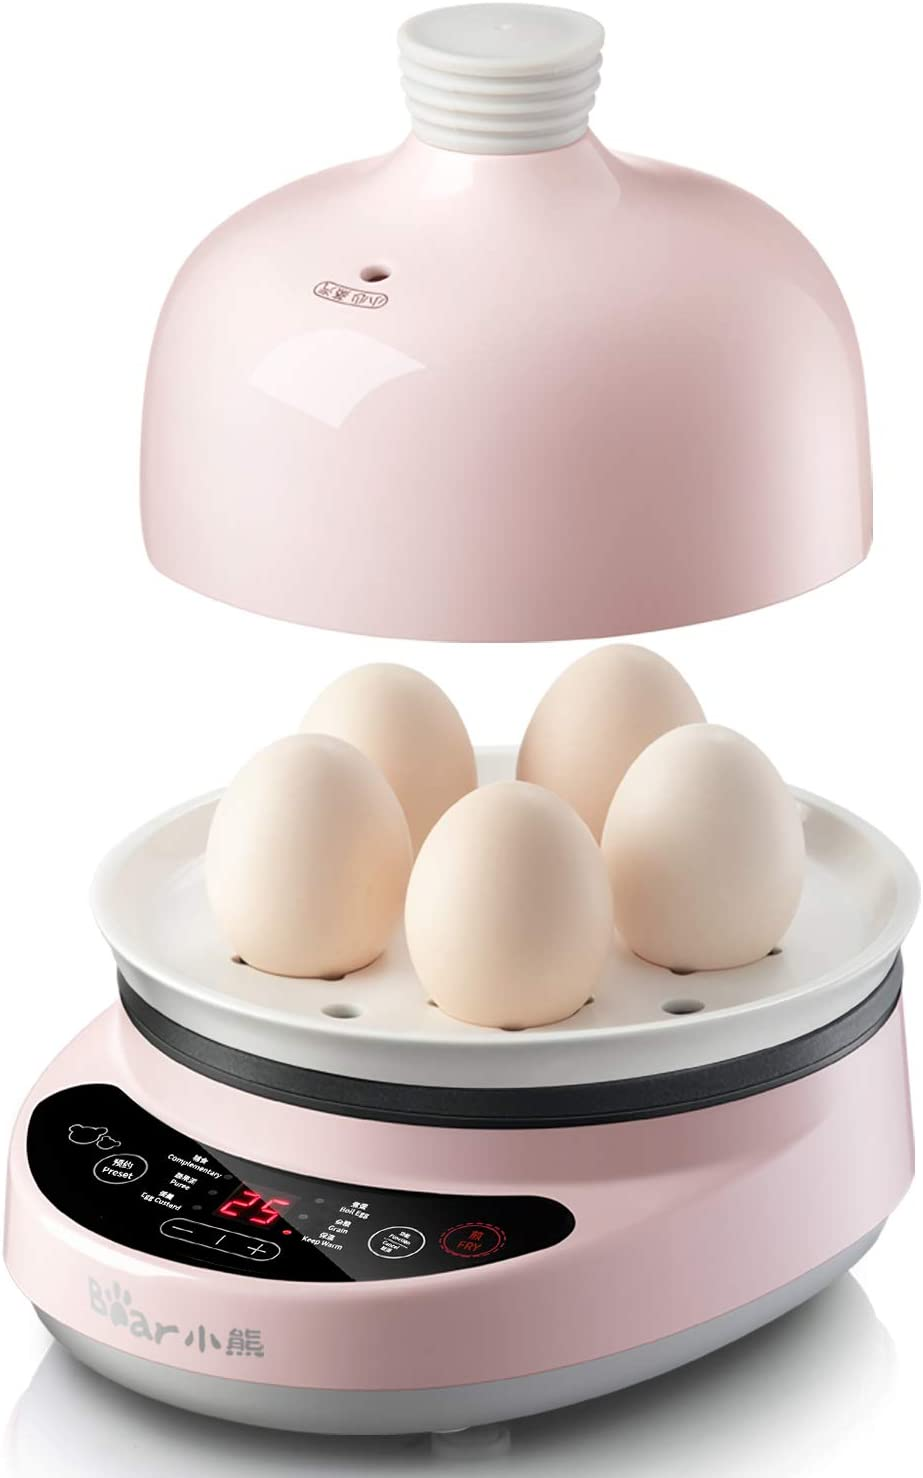 Bar Rapid 5 Capacity Electric Egg Cooker for Hard Boiled, Poached, Scrambled, Steamed Vegetables, Seafood, Dumplings & More, with Ceramic steaming rack and lid, Auto Shut Off